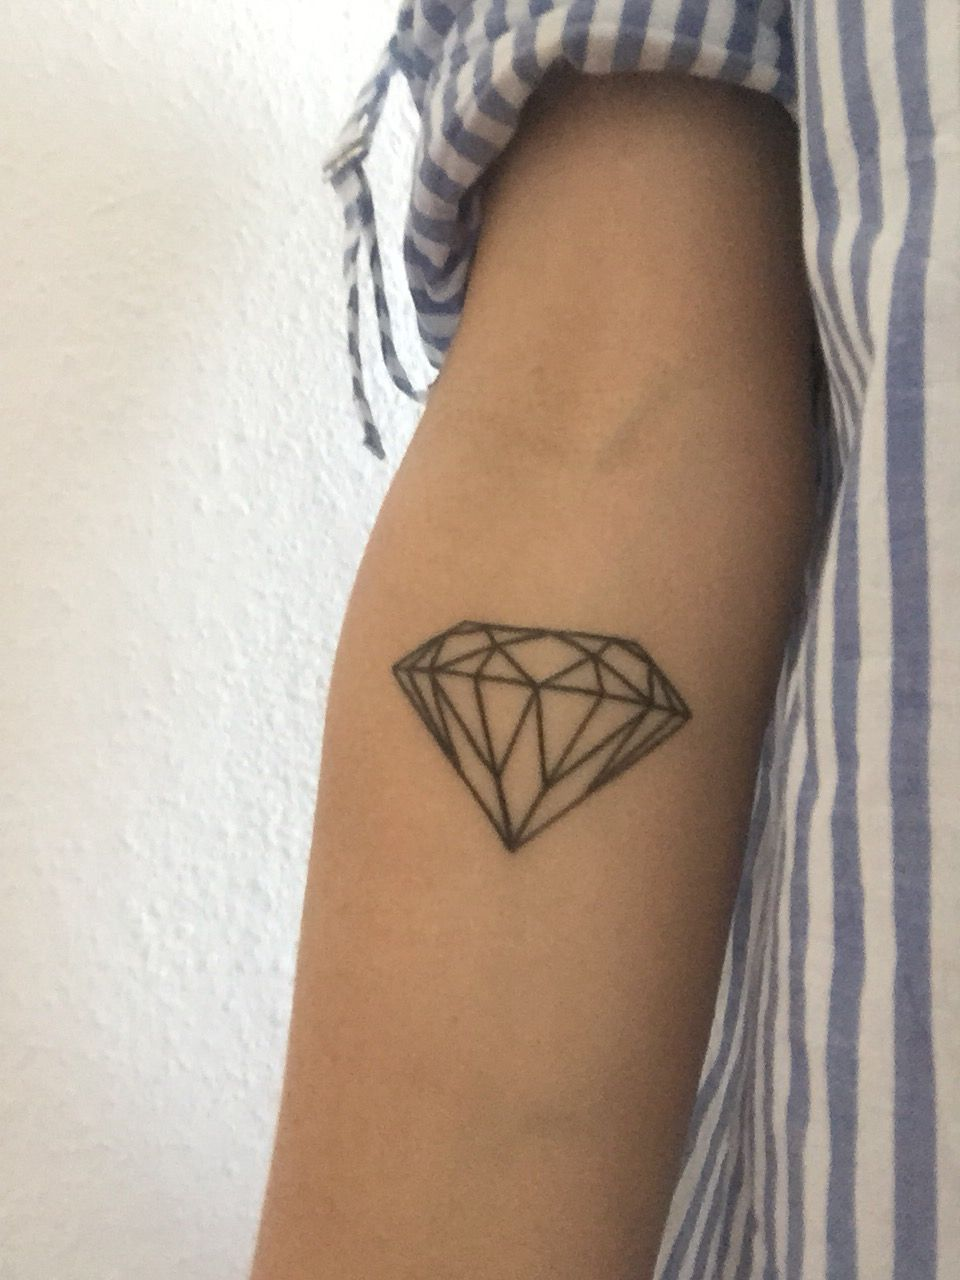 Diamond tattoo diamond diamant tattoo tatouage geometric blackink tatouage pinterest - Tatouage diamant main ...